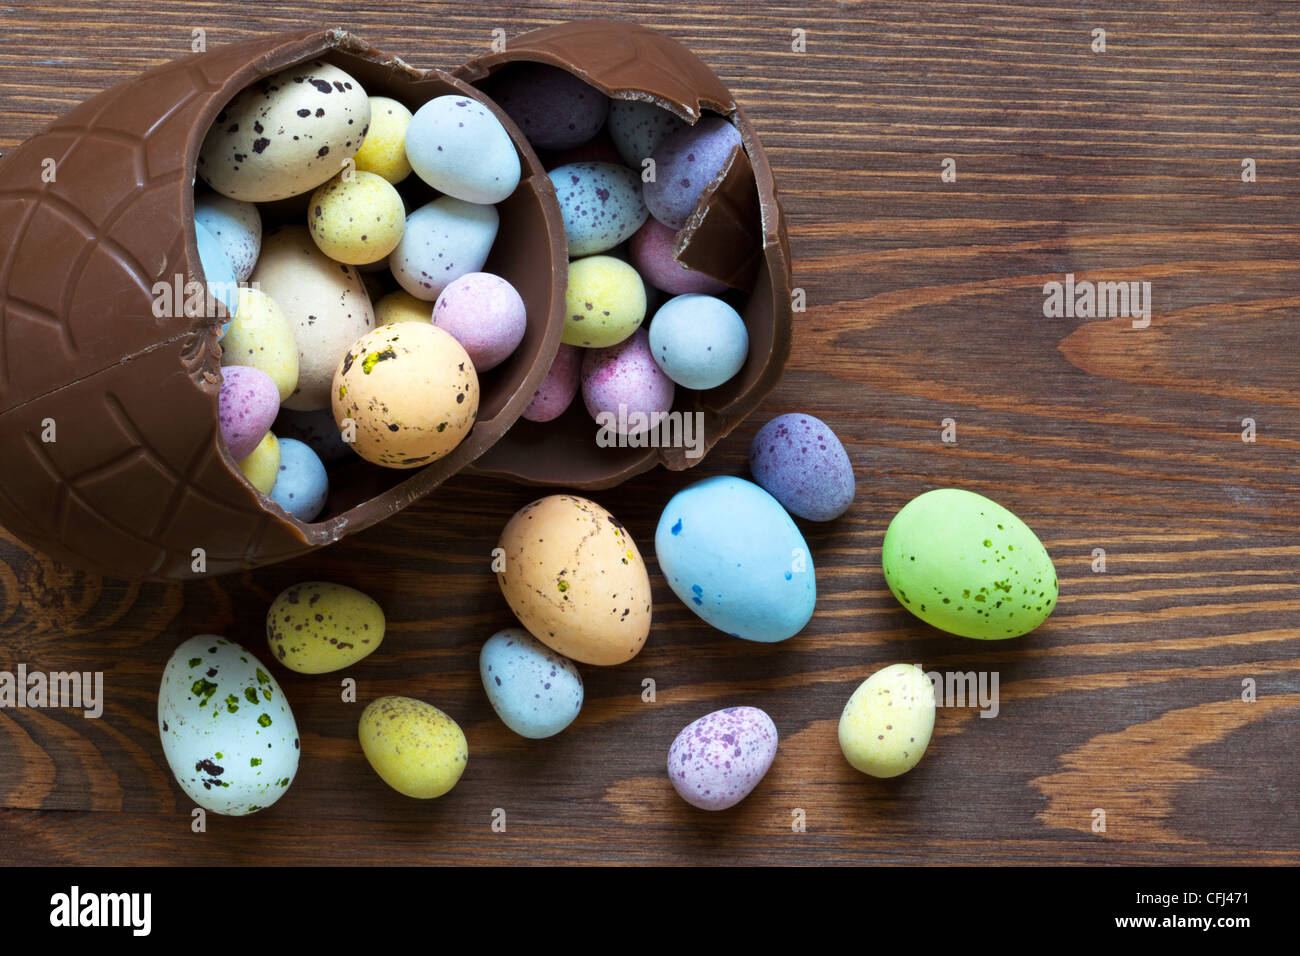 Still life photo of a large broken chocolate easter egg full of mini candy covered eggs in various pastel colours. Stock Photo